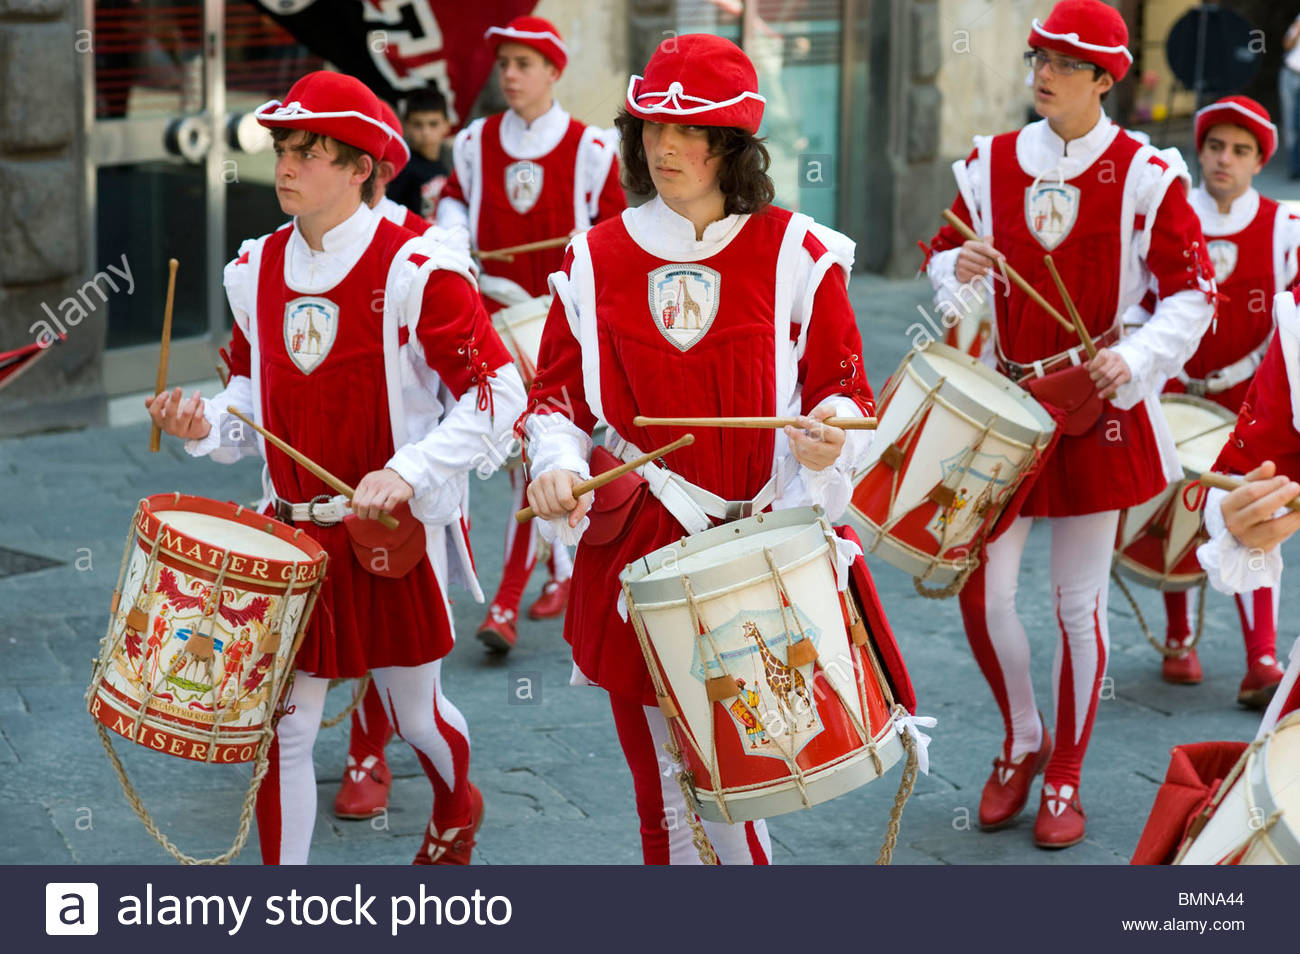 Residents of the Giraffa (Giraffe) contrada (district) of Siena rehearse for the annual Palio horse race, Siena, Stock Photo